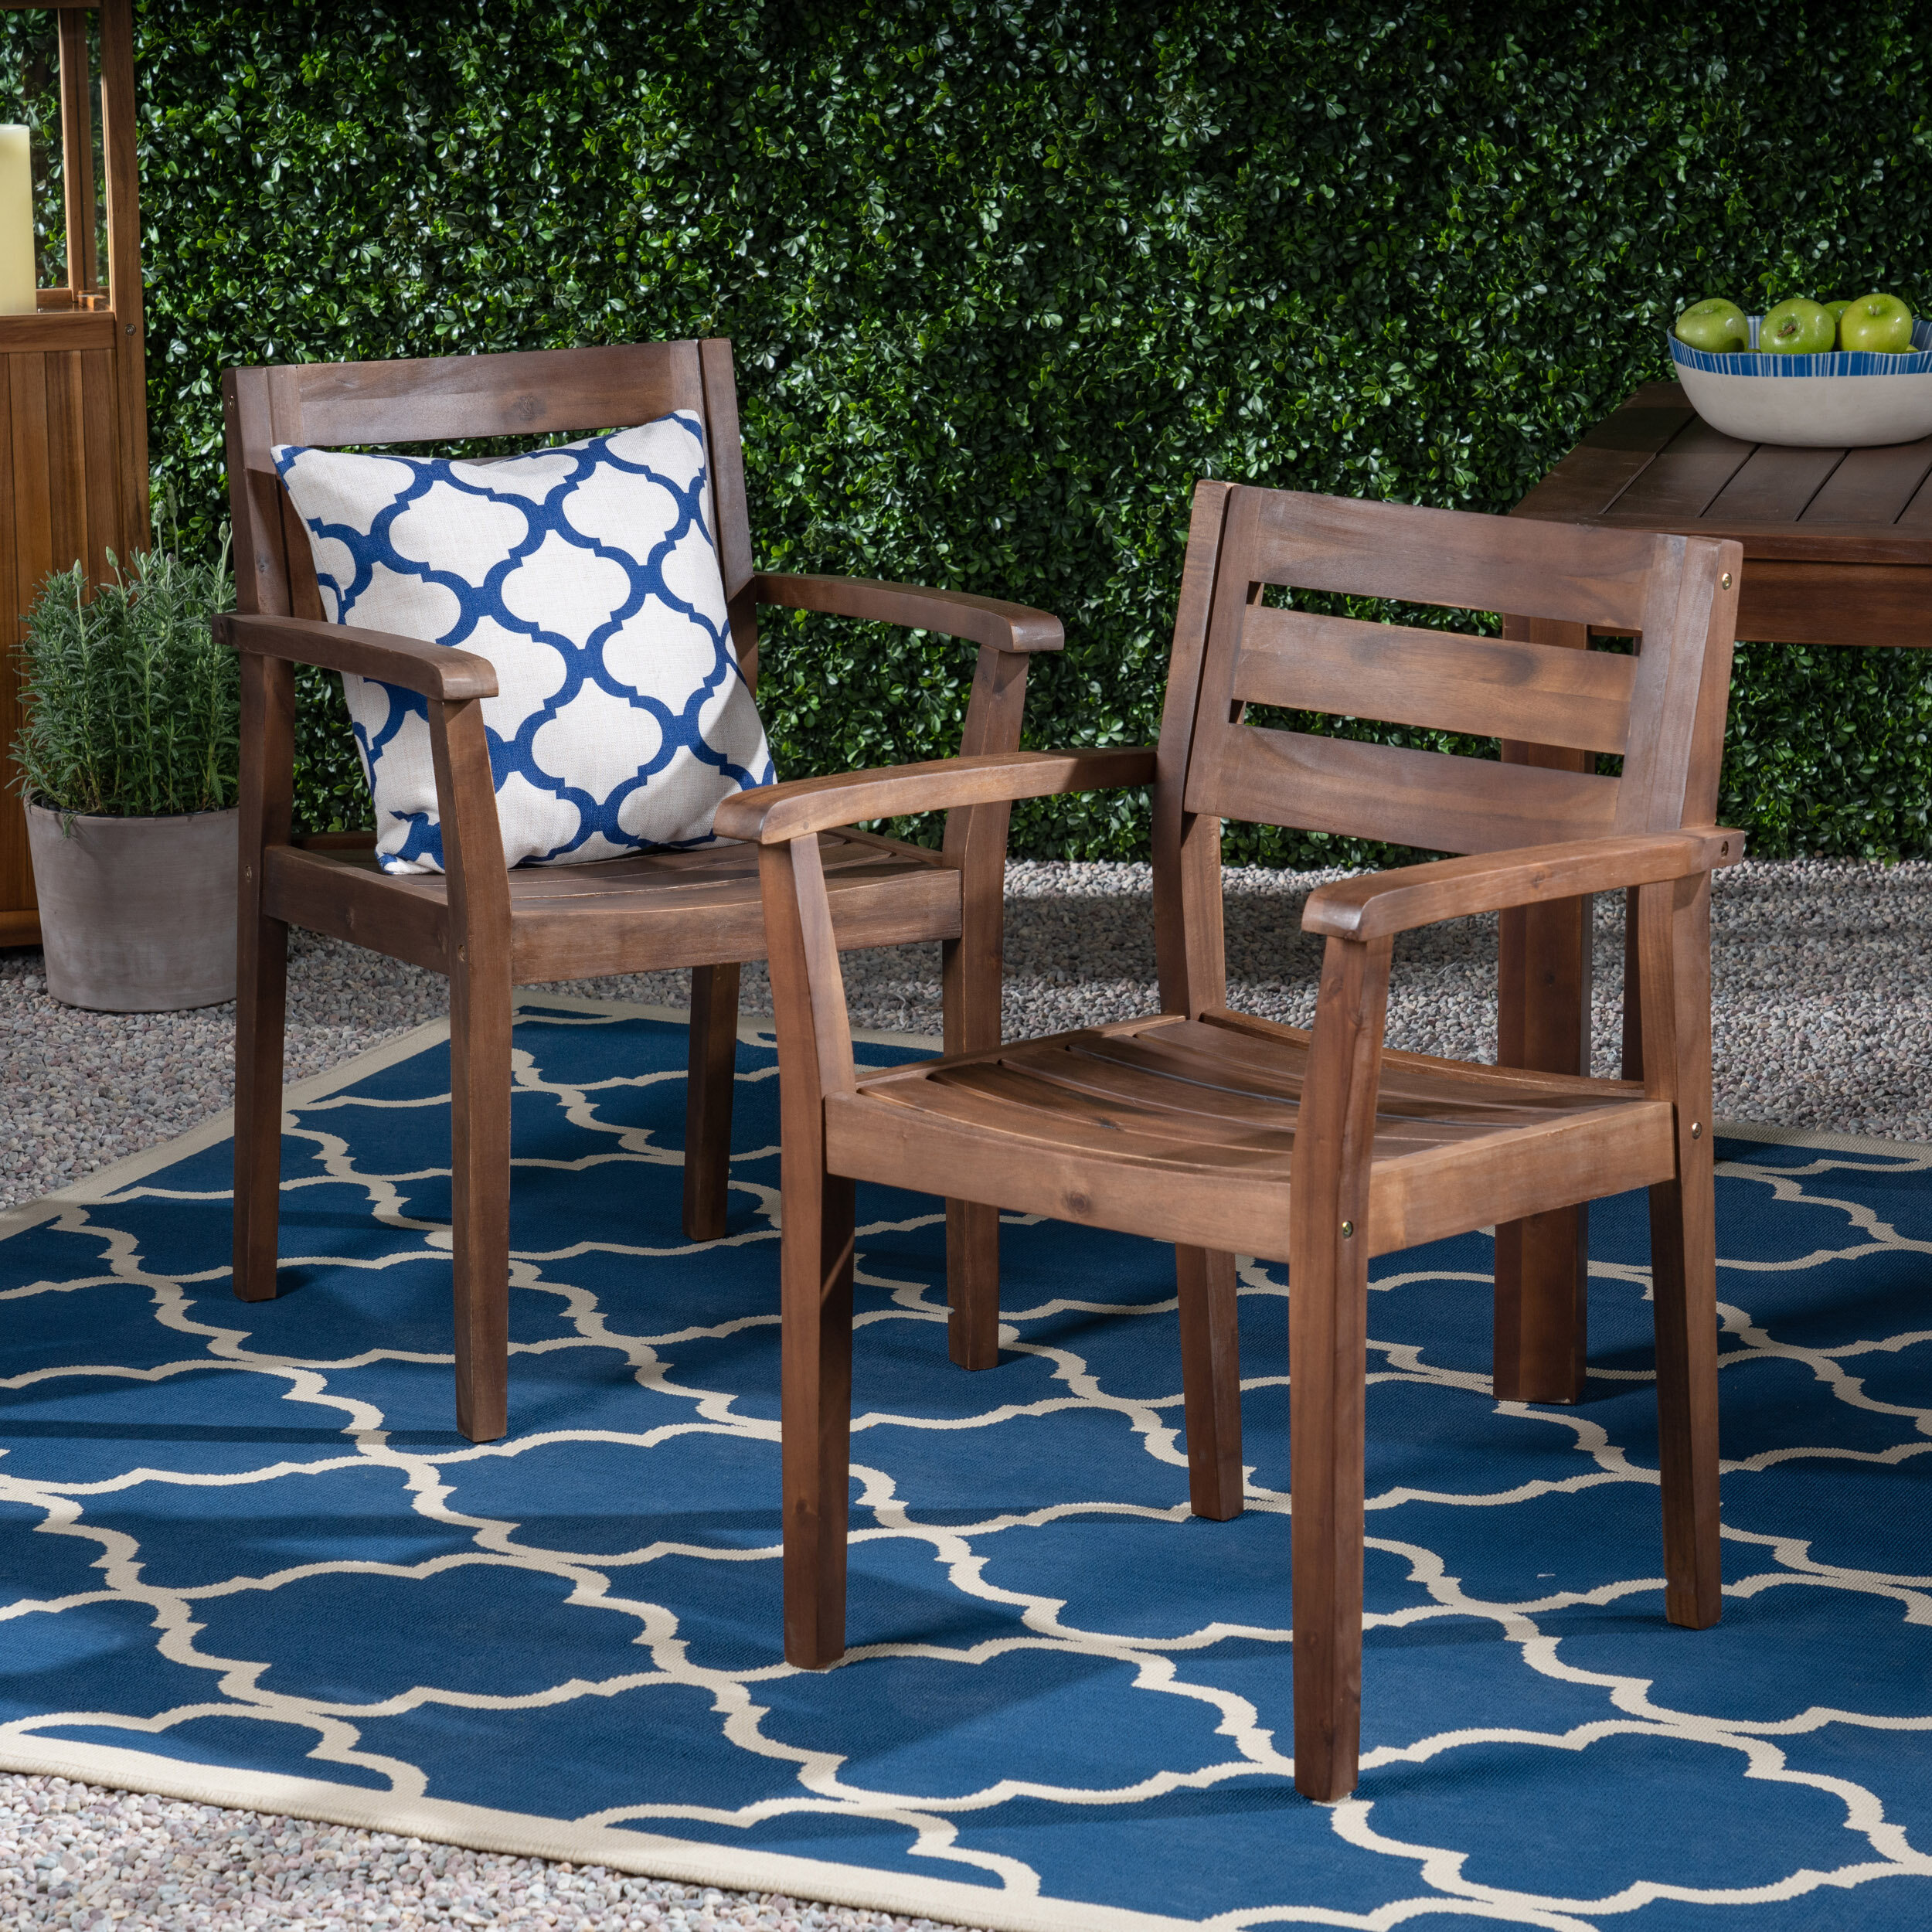 Outdoor Rustic Patio Dining Chair